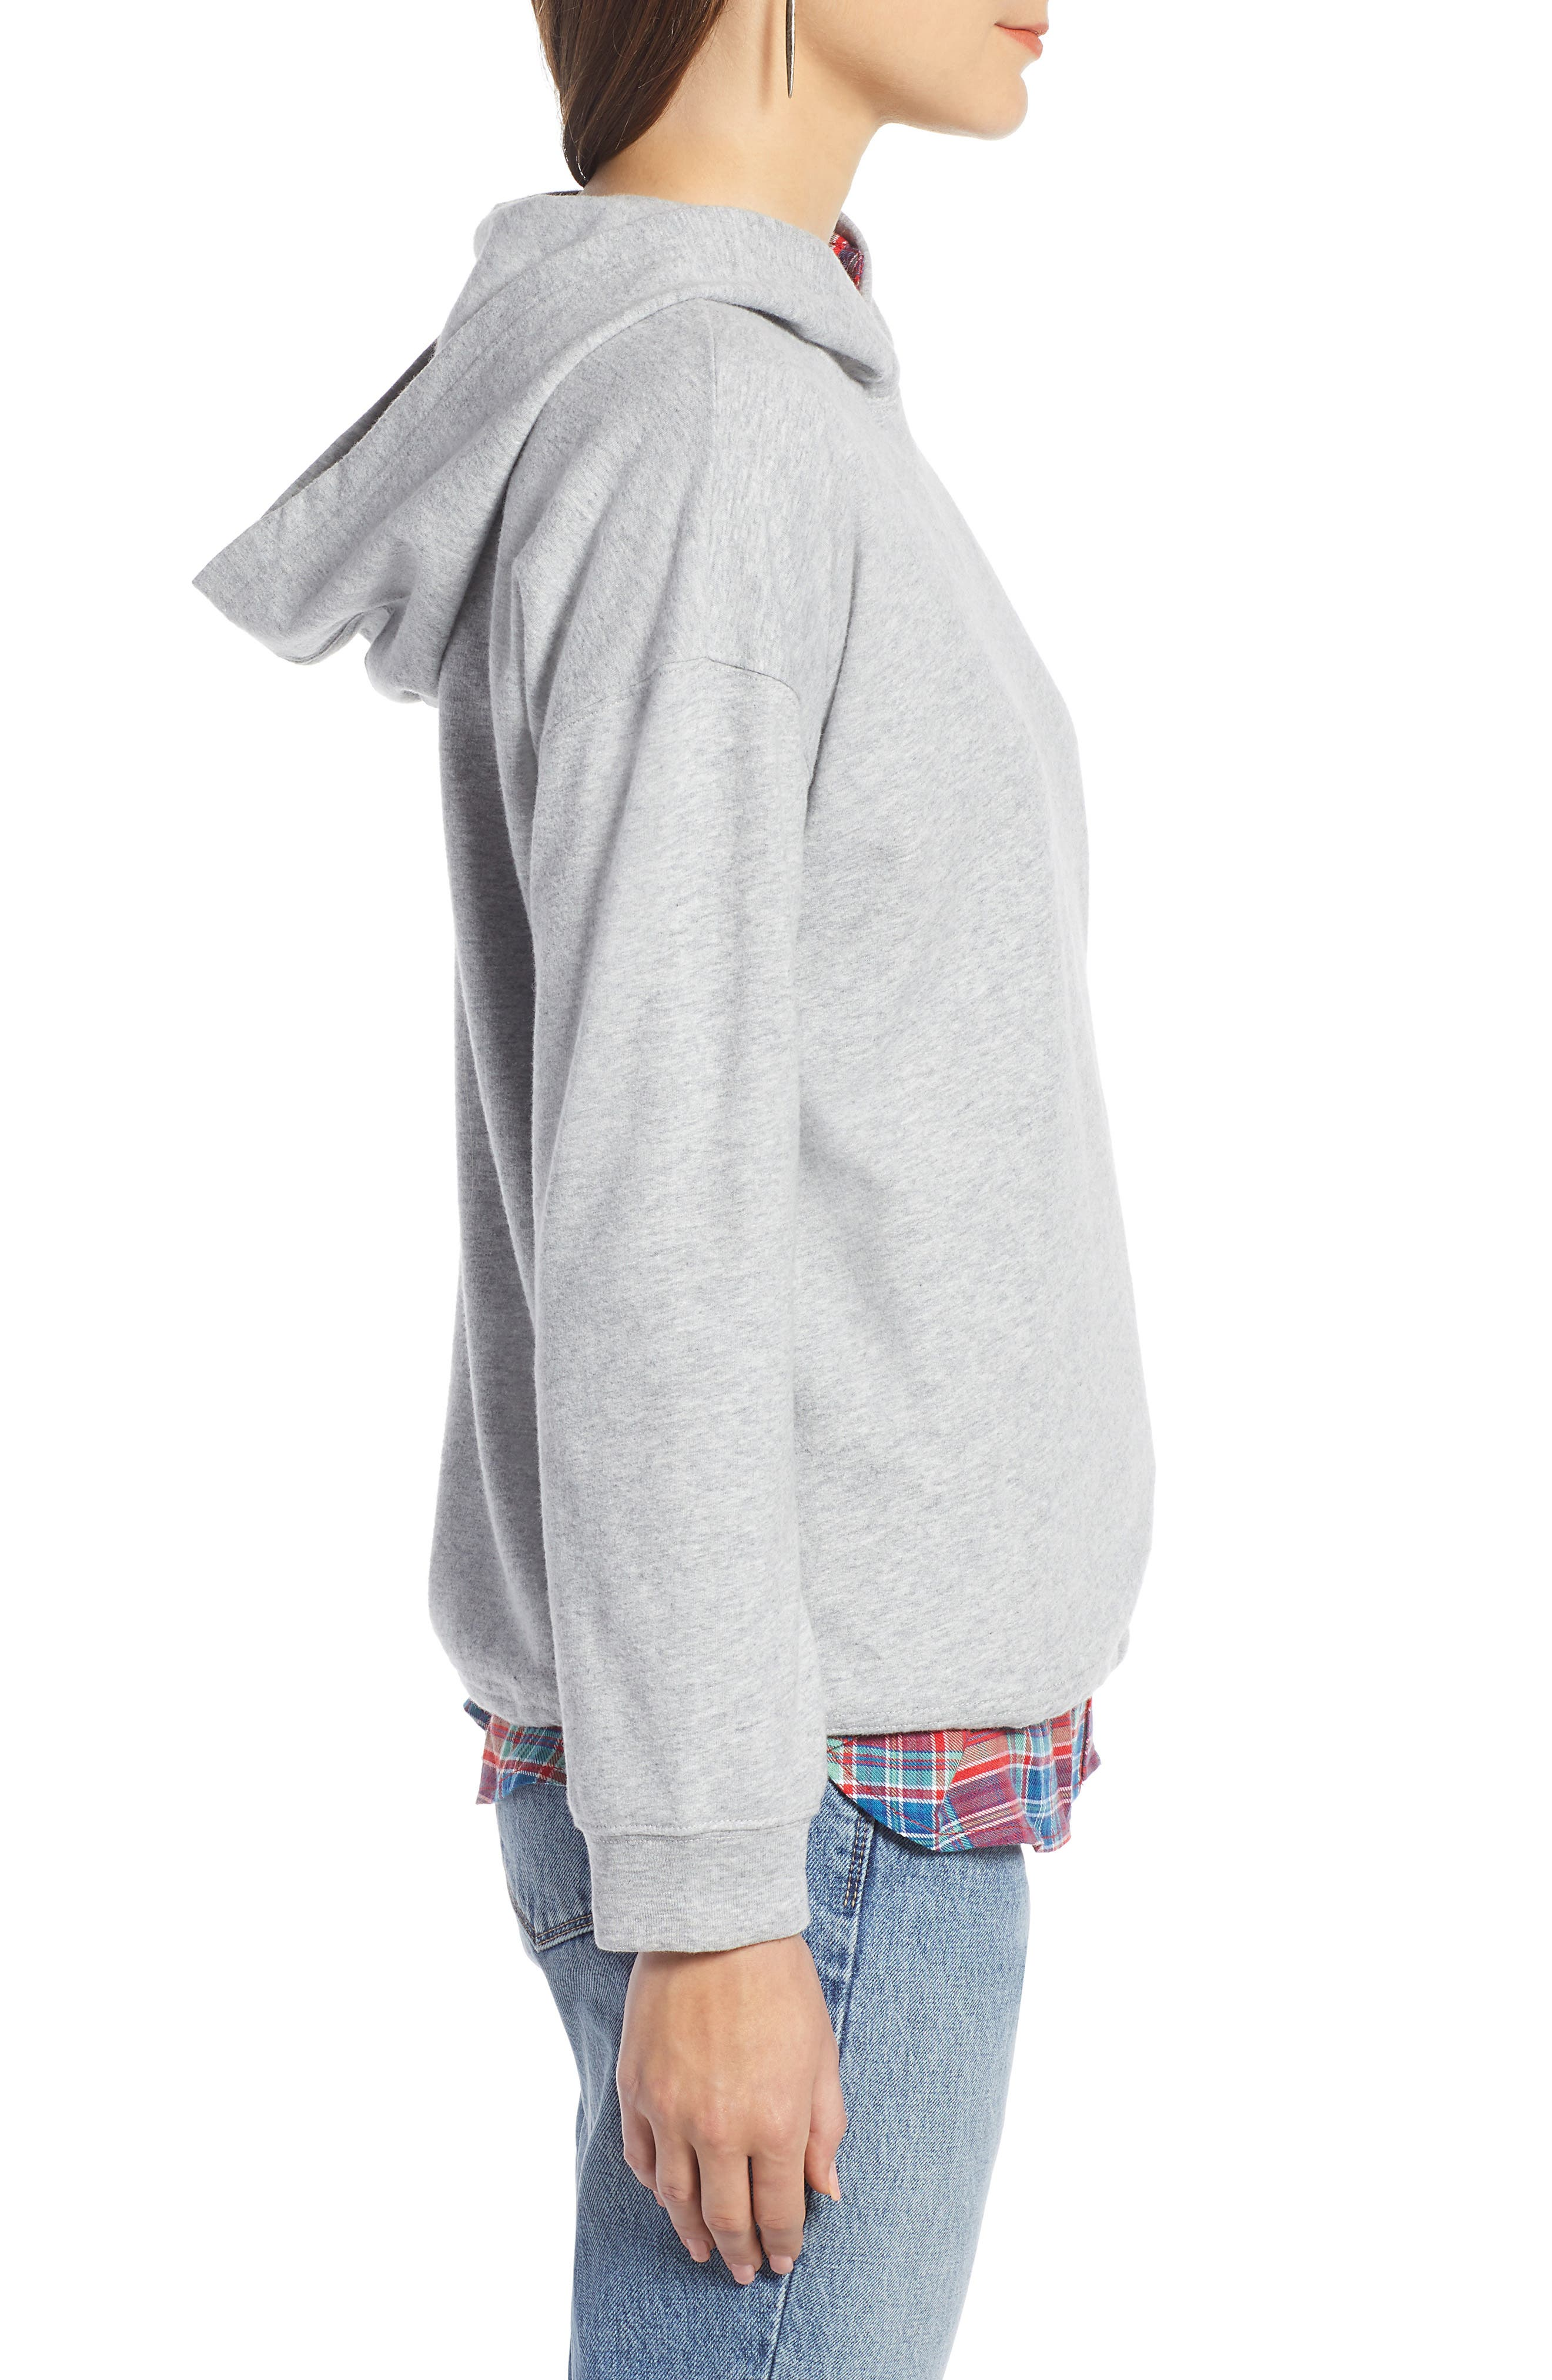 TREASURE & BOND, Drawstring Detail Hoodie, Alternate thumbnail 3, color, 030